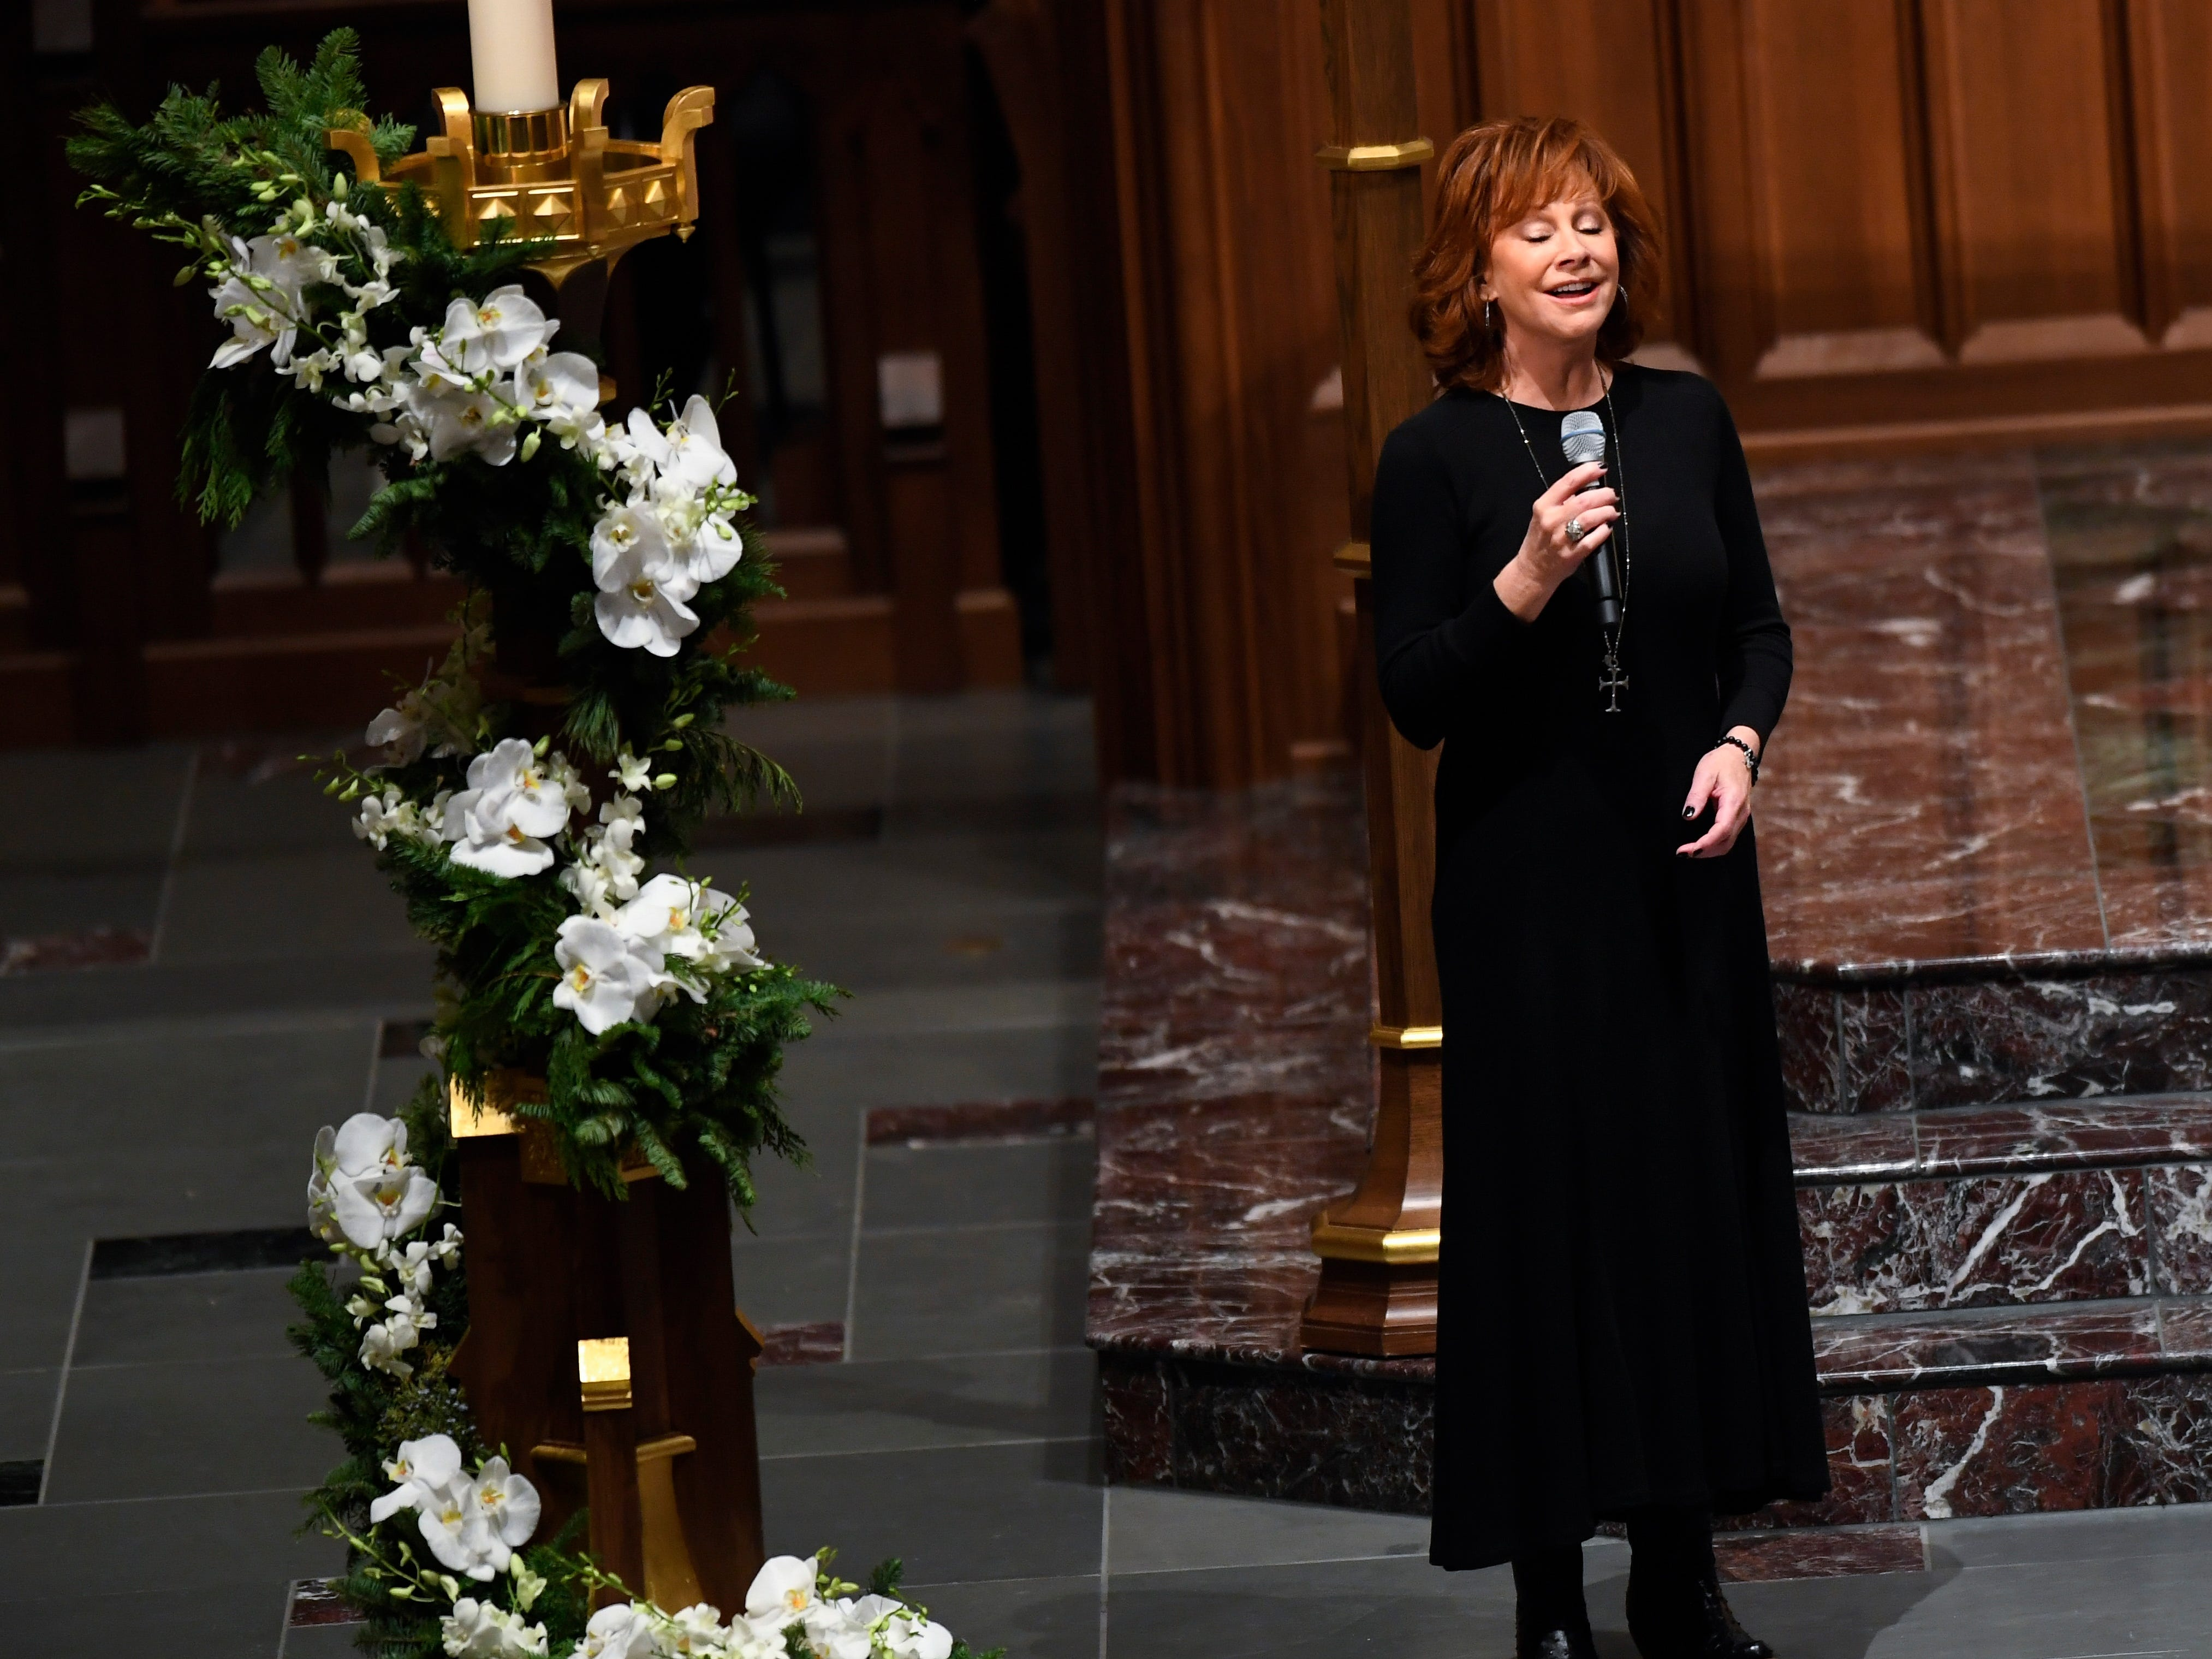 Reba McEntire sings at the funeral service for former President George H.W. Bush at St. Martin's Episcopal Church in Houston, Dec. 6, 2018.